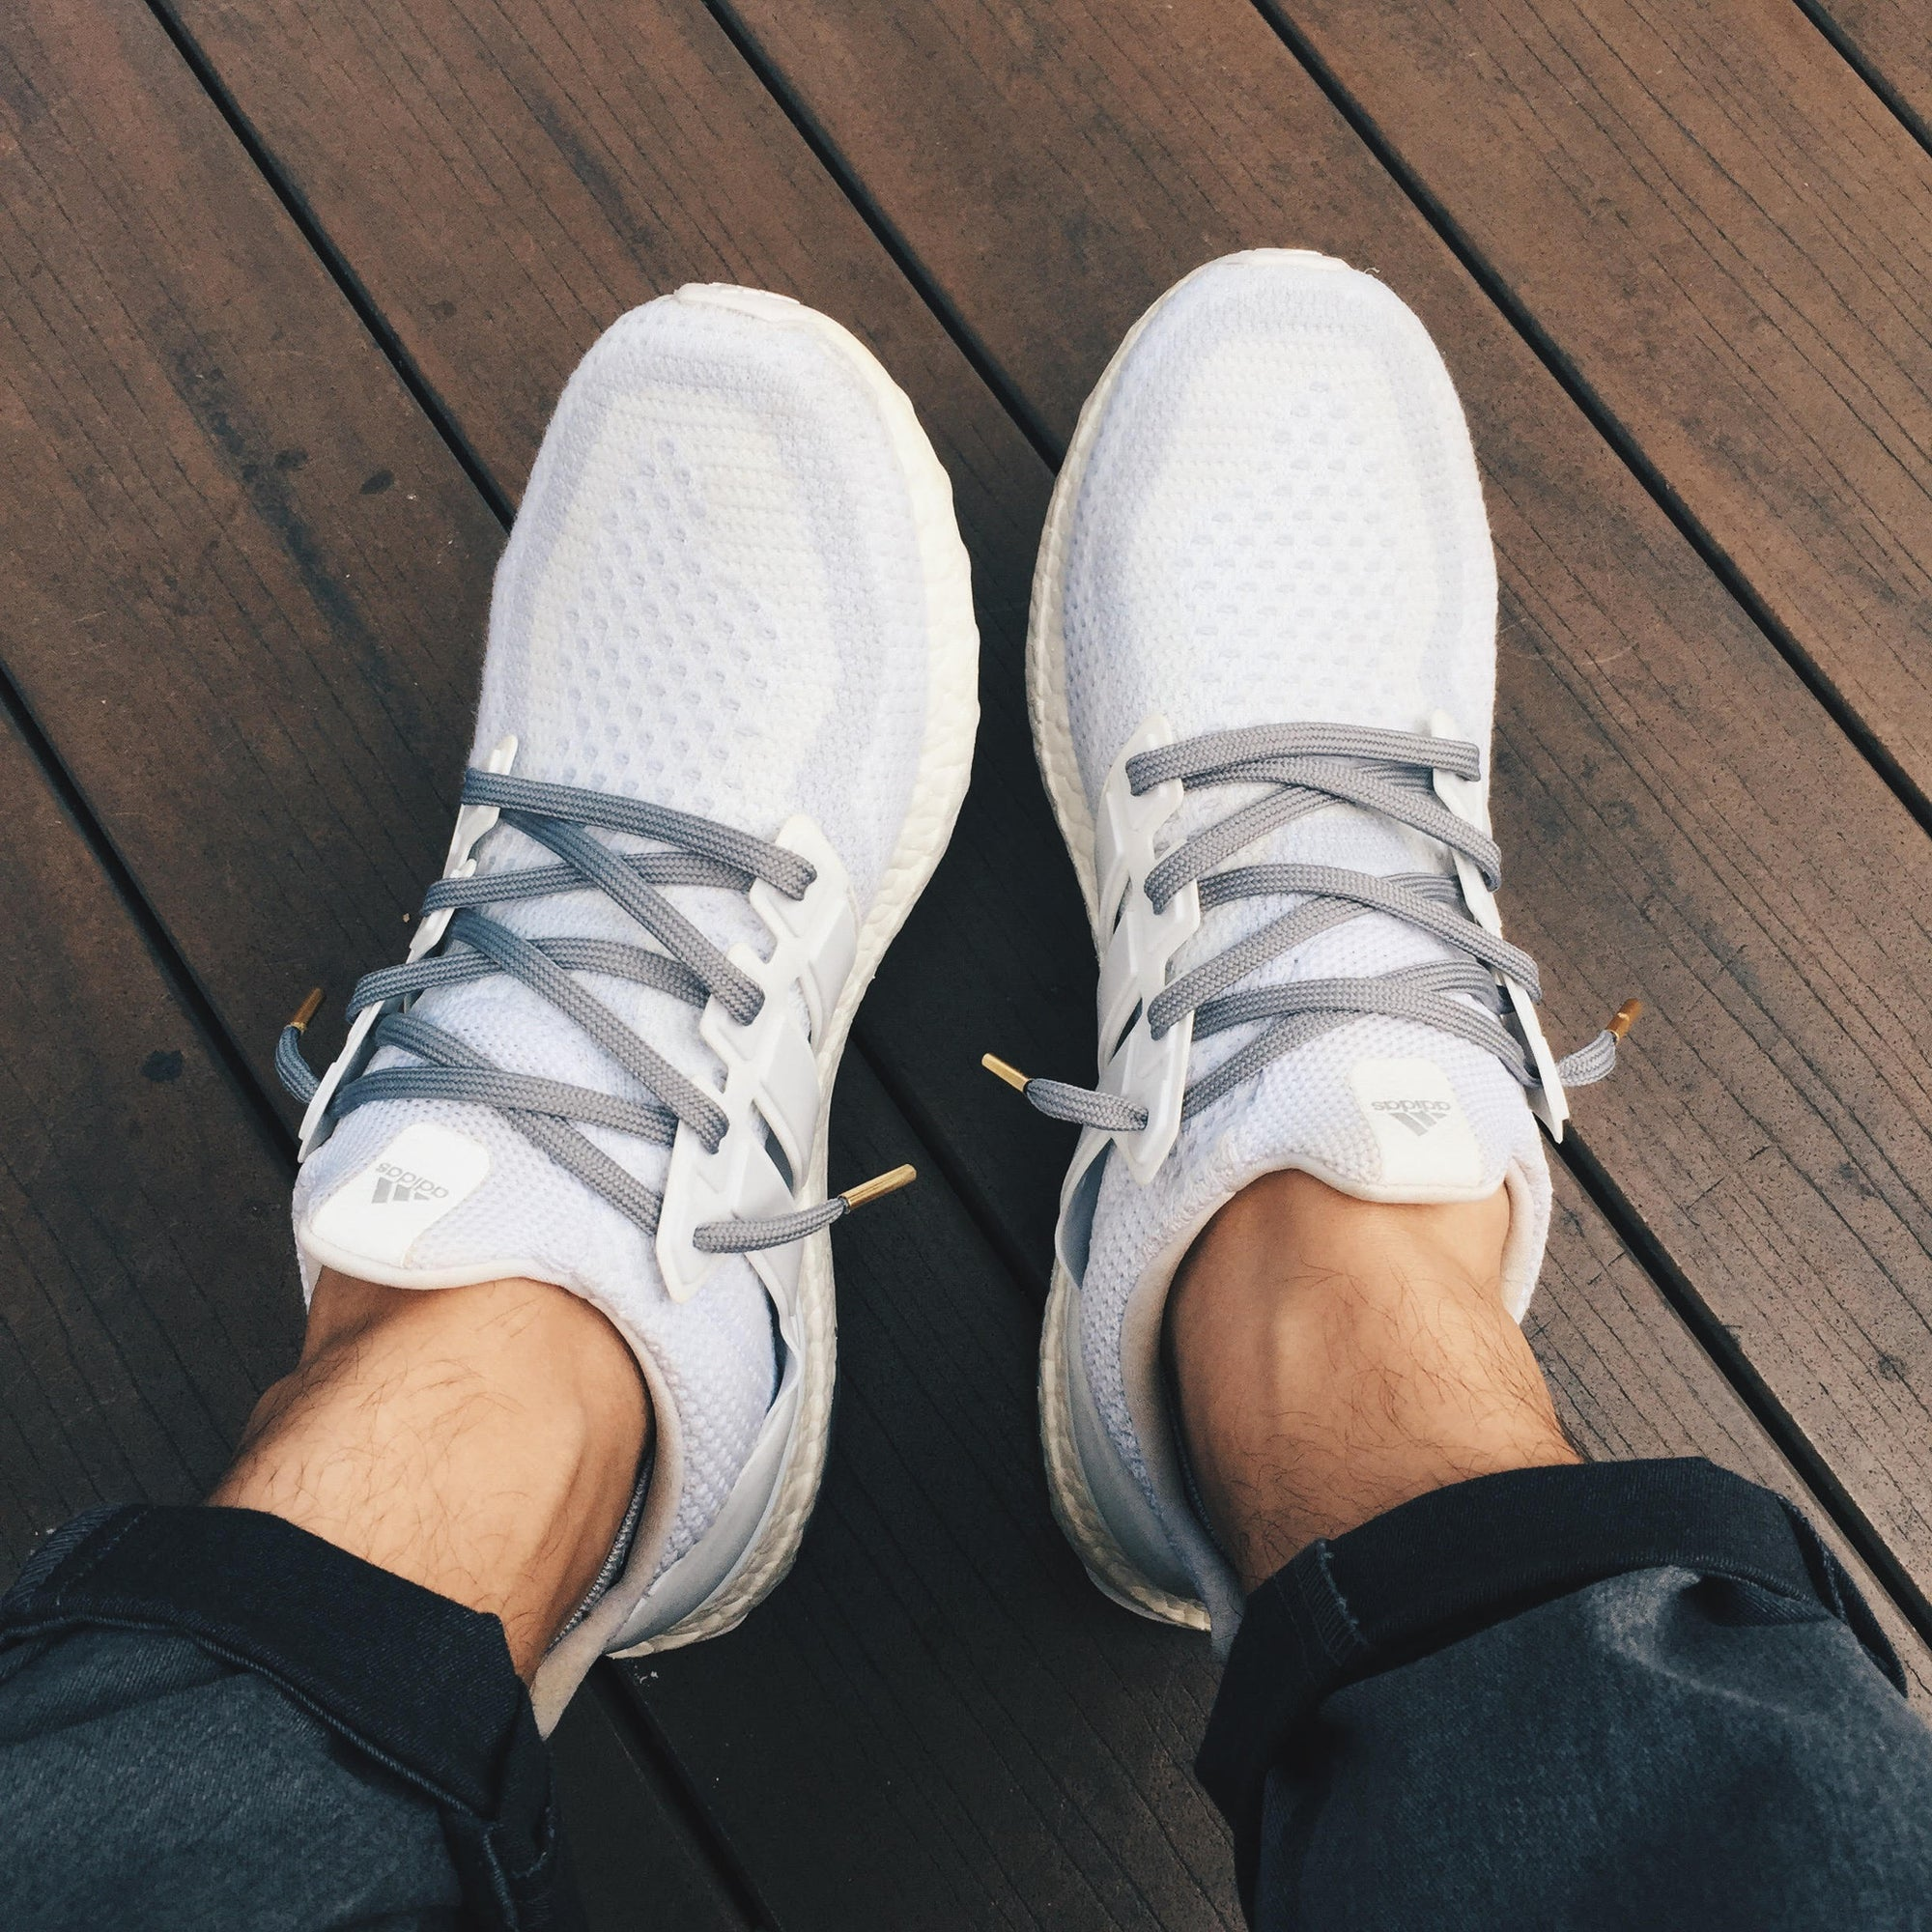 SHOELACE RECOMMENDATIONS - Adidas Ultra Boost White